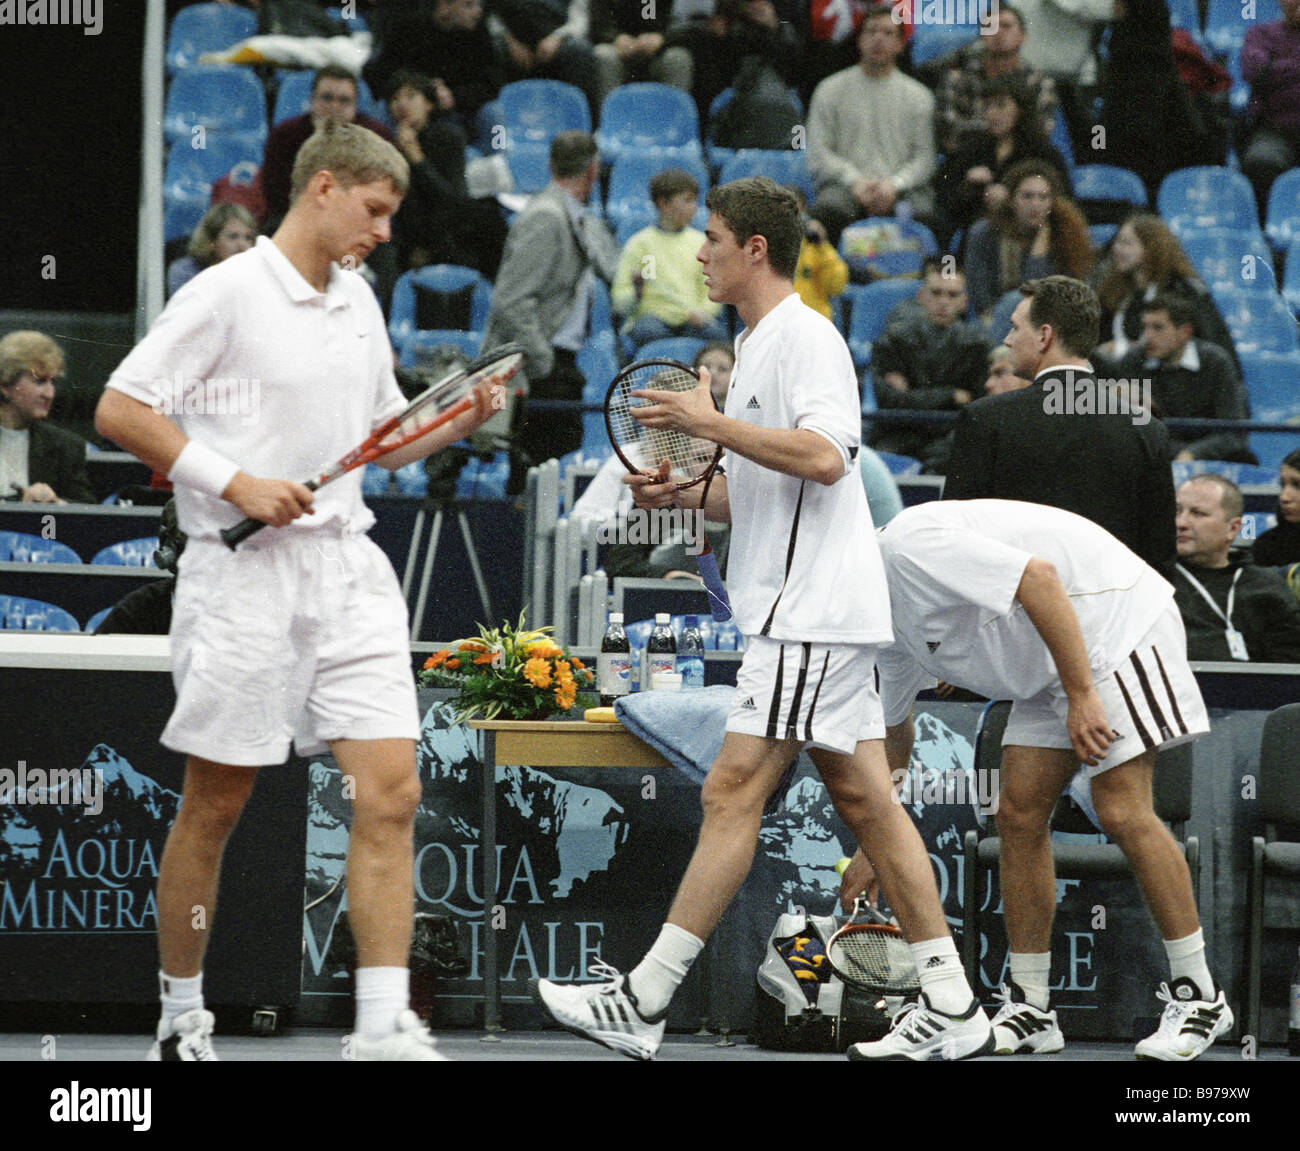 Russian tennis players Yevgeny Kafelnikov left and Marat Safin